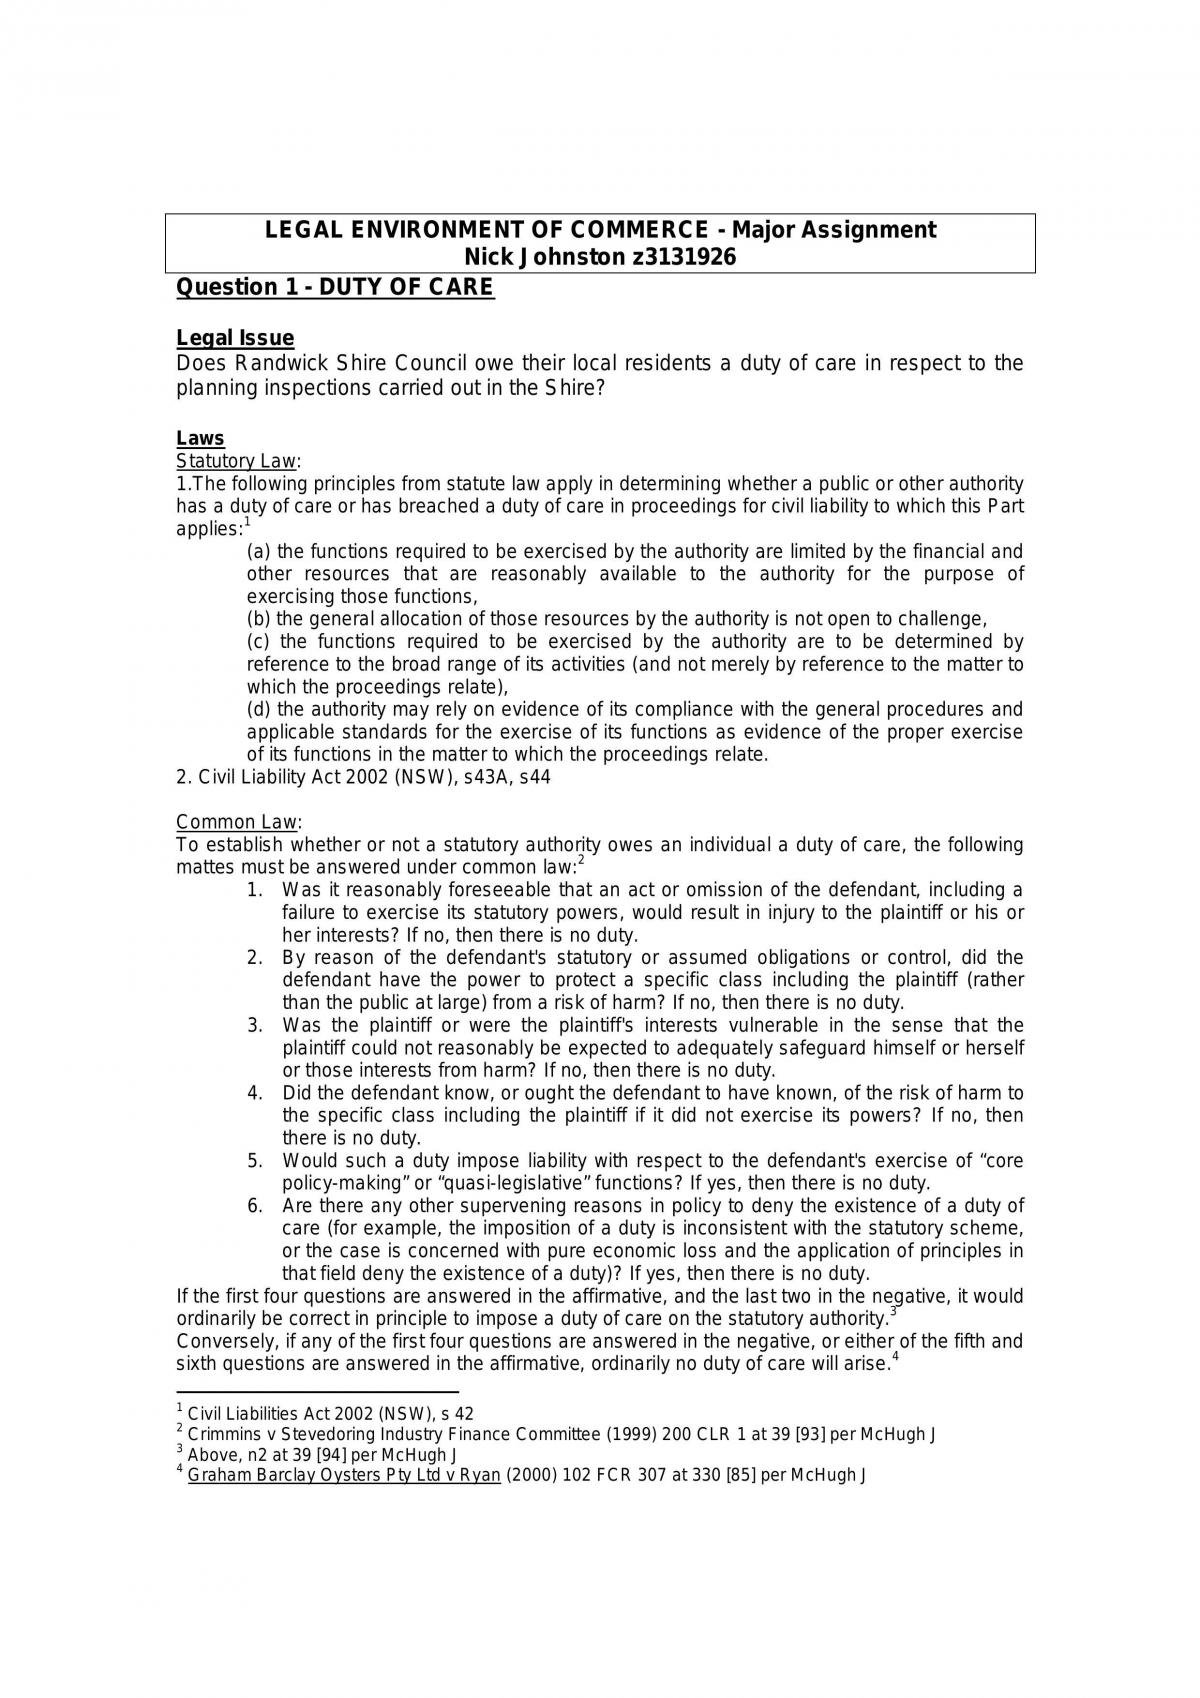 Duty Of Care For Statutory Authorities - Page 1